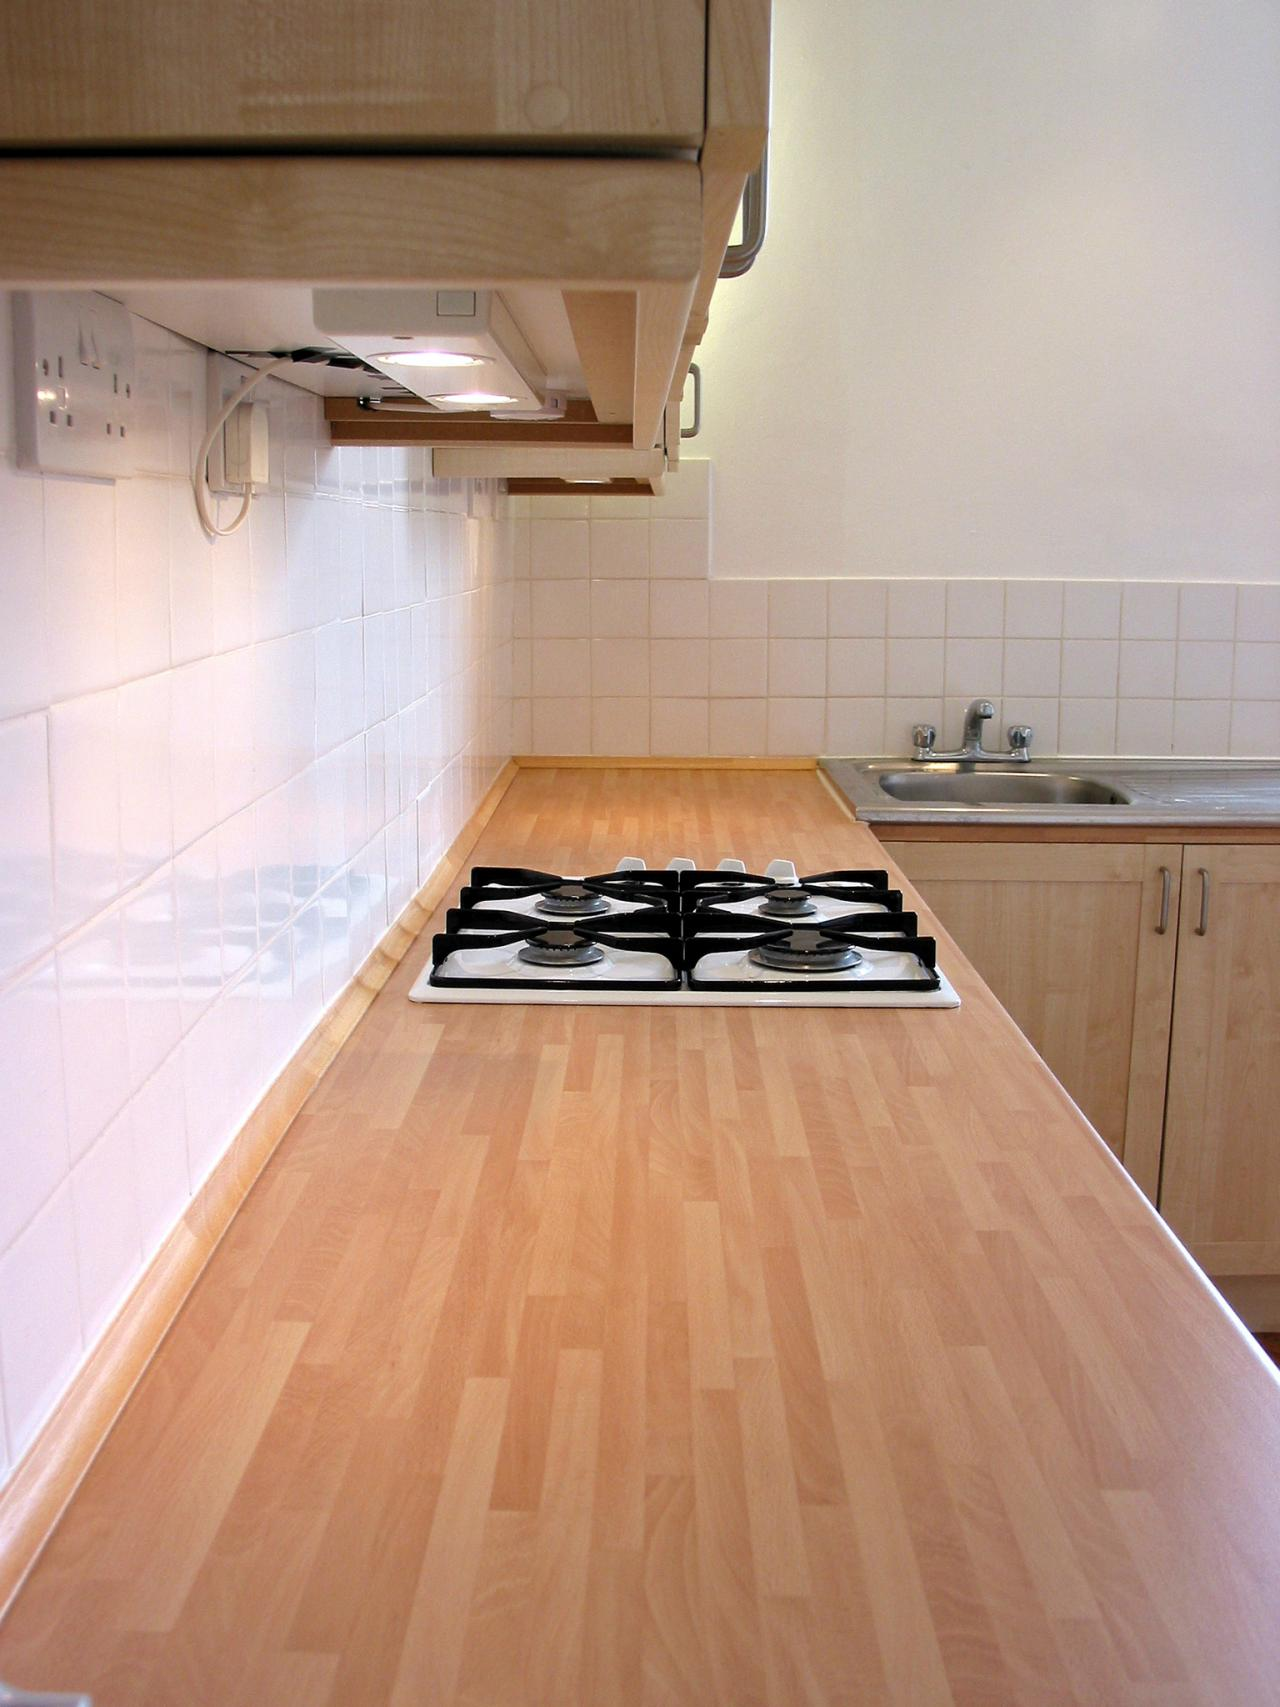 Laminate Kitchen Countertops Pictures Amp Ideas From Hgtv